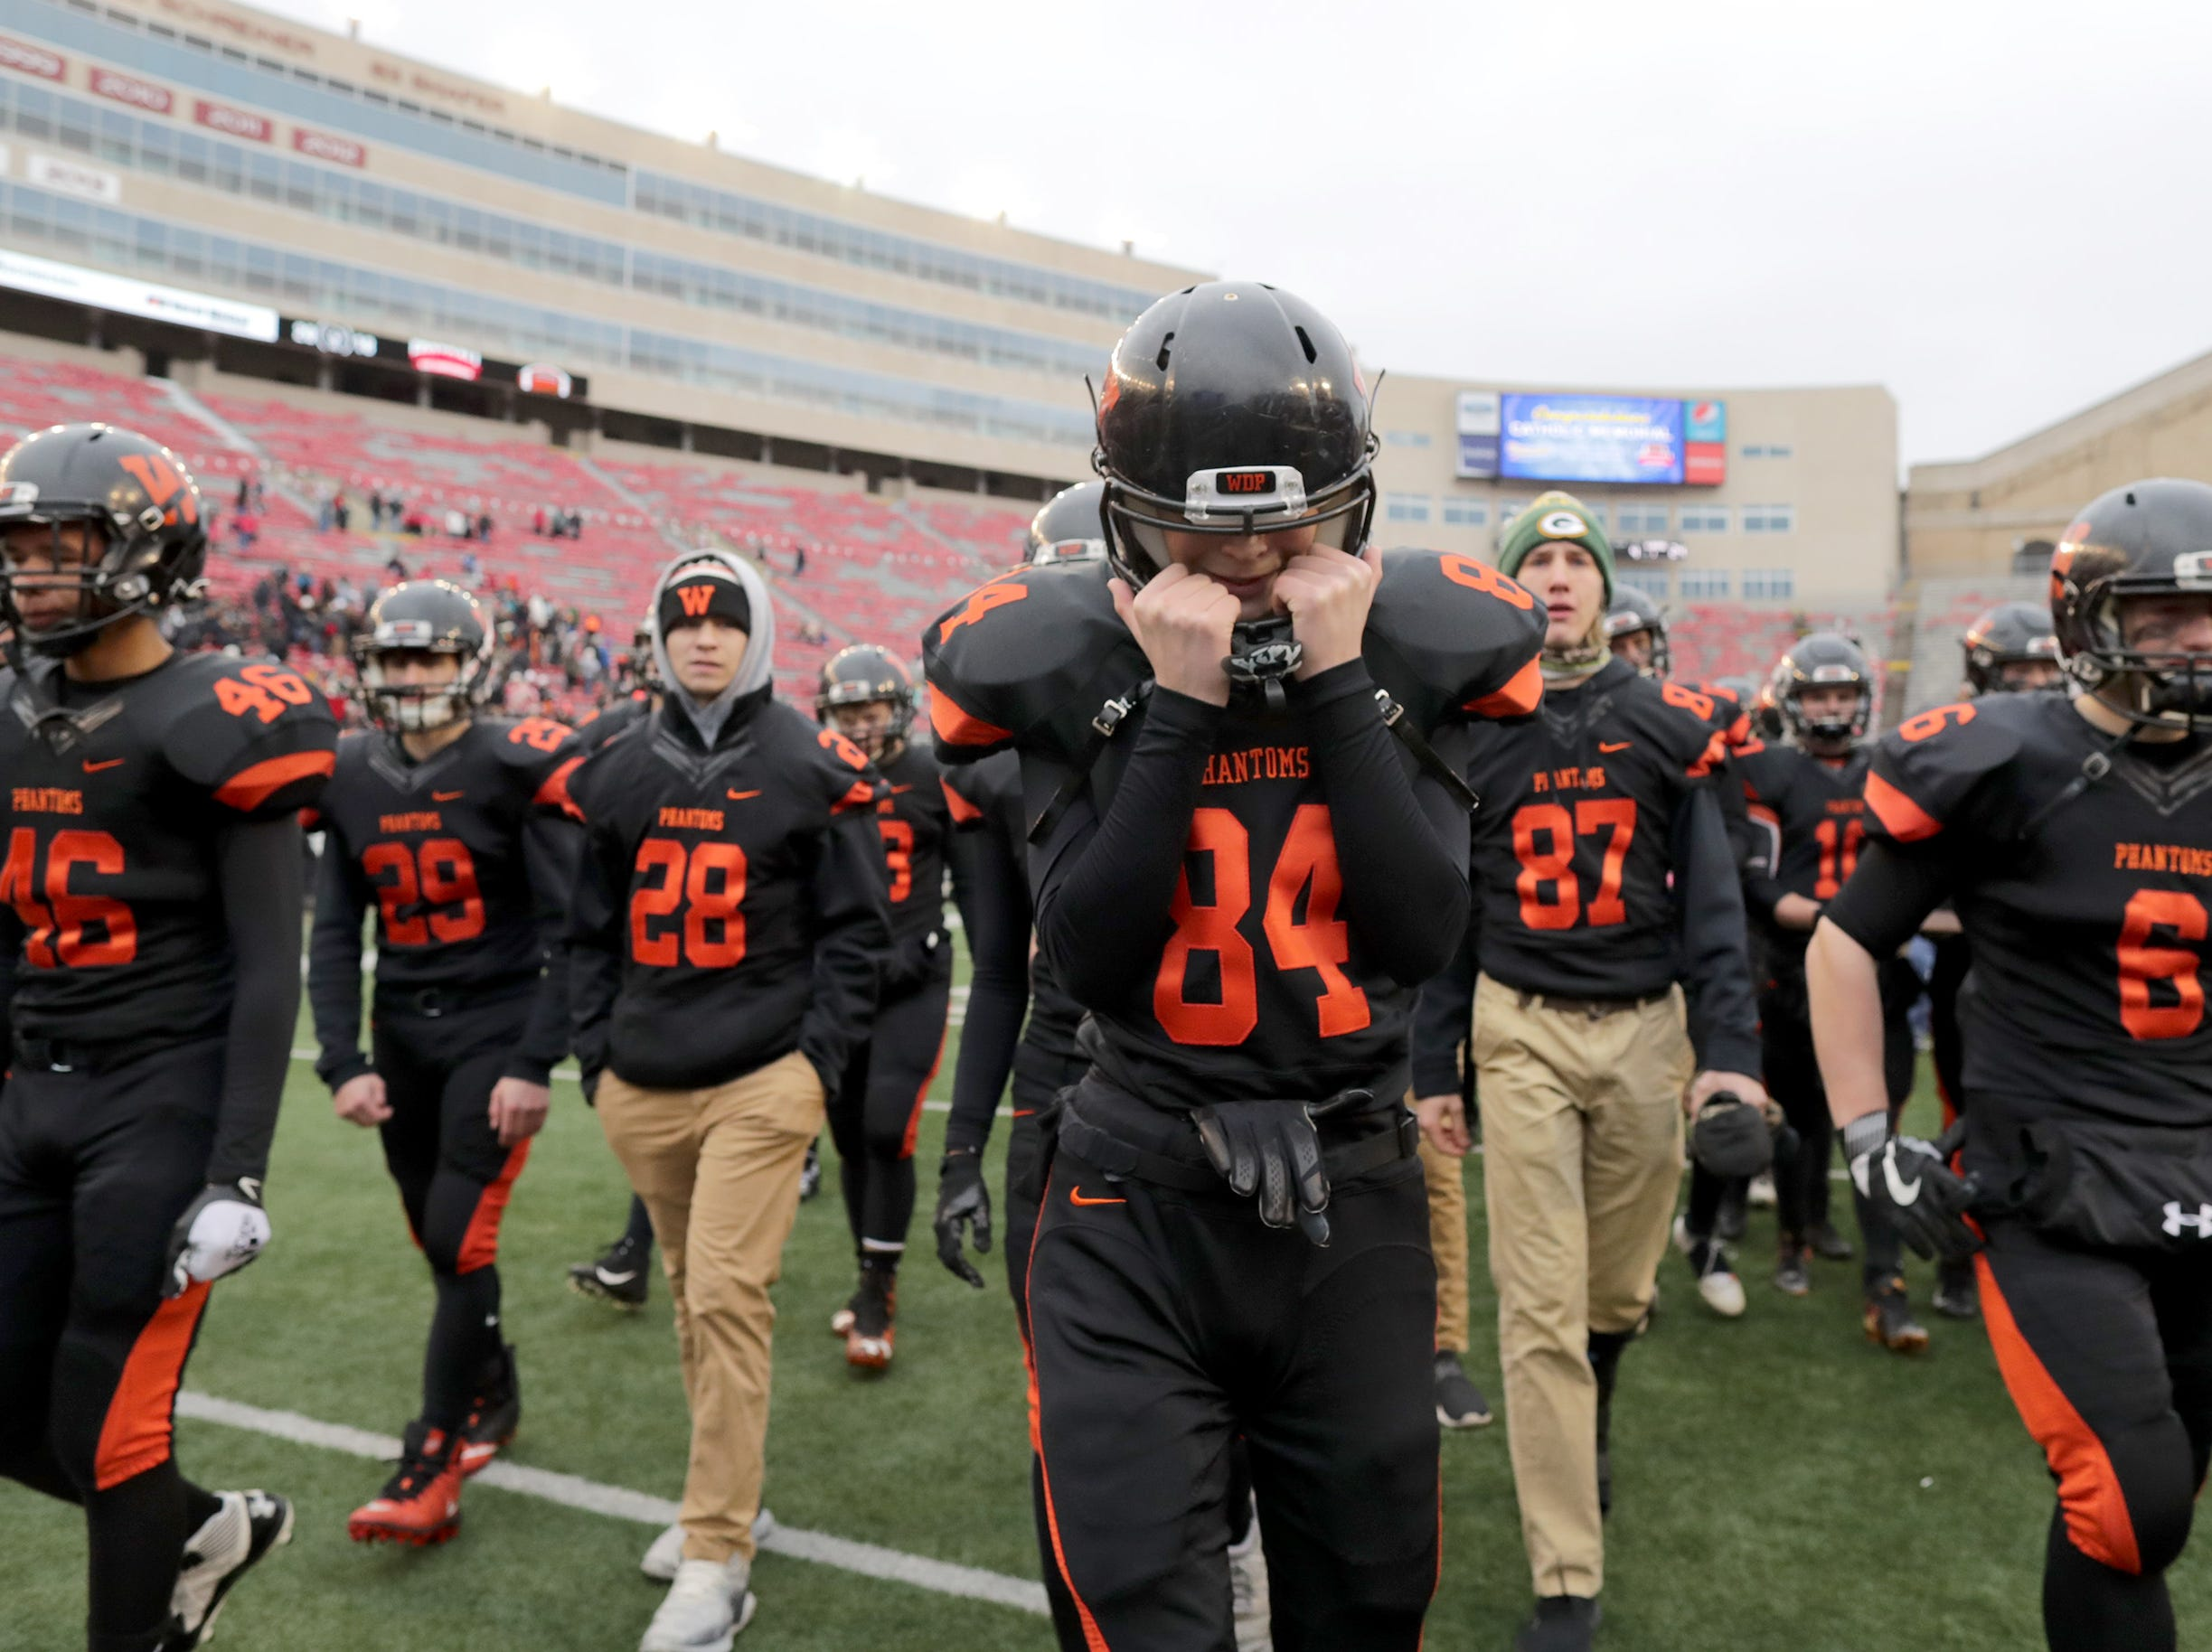 West De Pere High School's #84 Alex Martin reacts after the Phantom's loss to Catholic Memorial High School during the WIAA Division 3 state championship football game on Friday, November 16, 2018, at Camp Randall in Madison, Wis. Wm. Glasheen/USA TODAY NETWORK-Wisconsin.